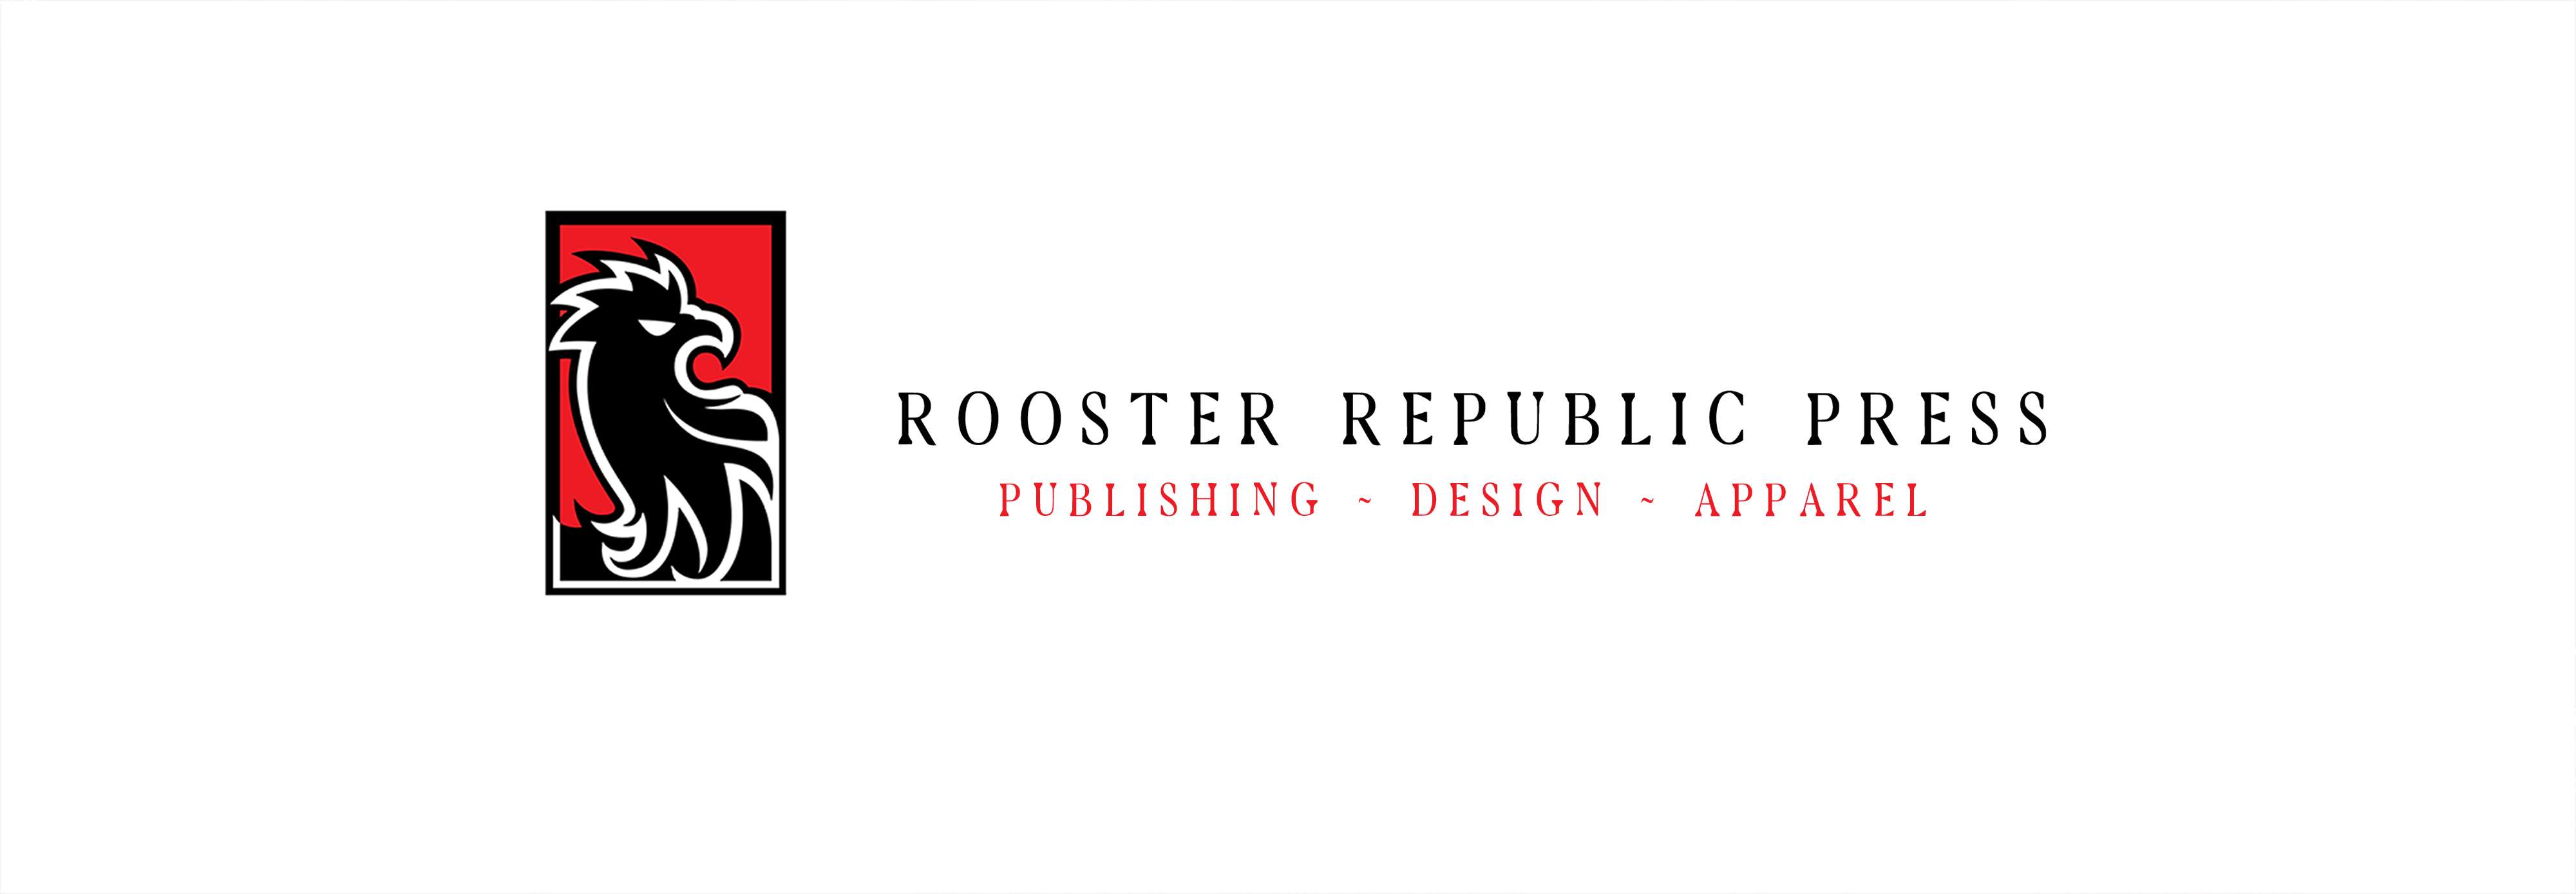 Rooster Republic Press